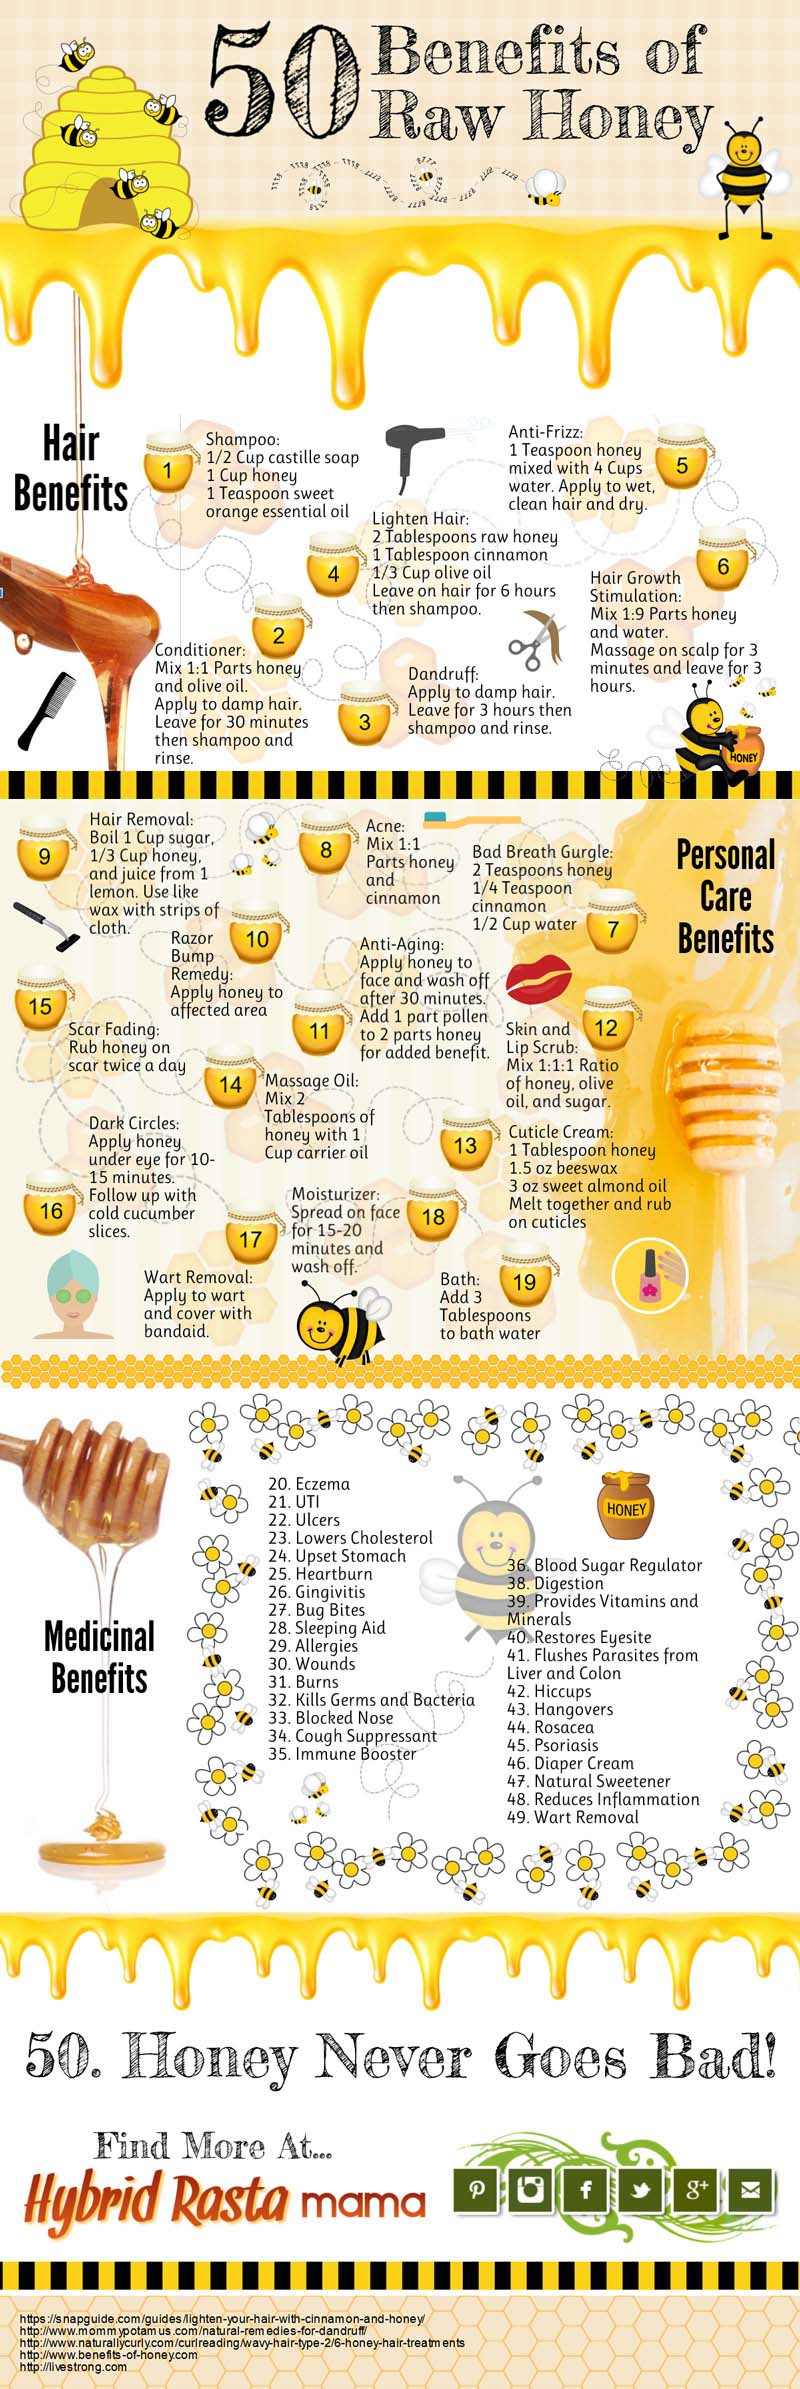 50 Amazing Benefits Of Raw Honey Infographic